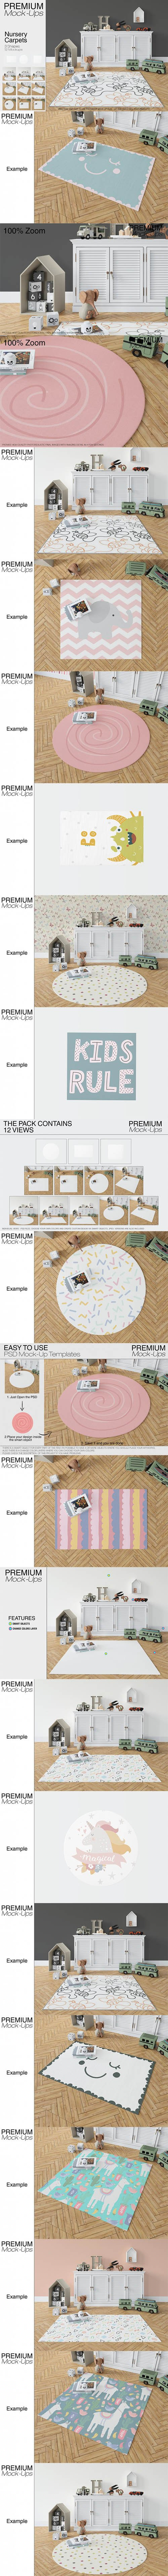 GR - 3 Types of Carpets - Round, Square & Rectangular 22040192